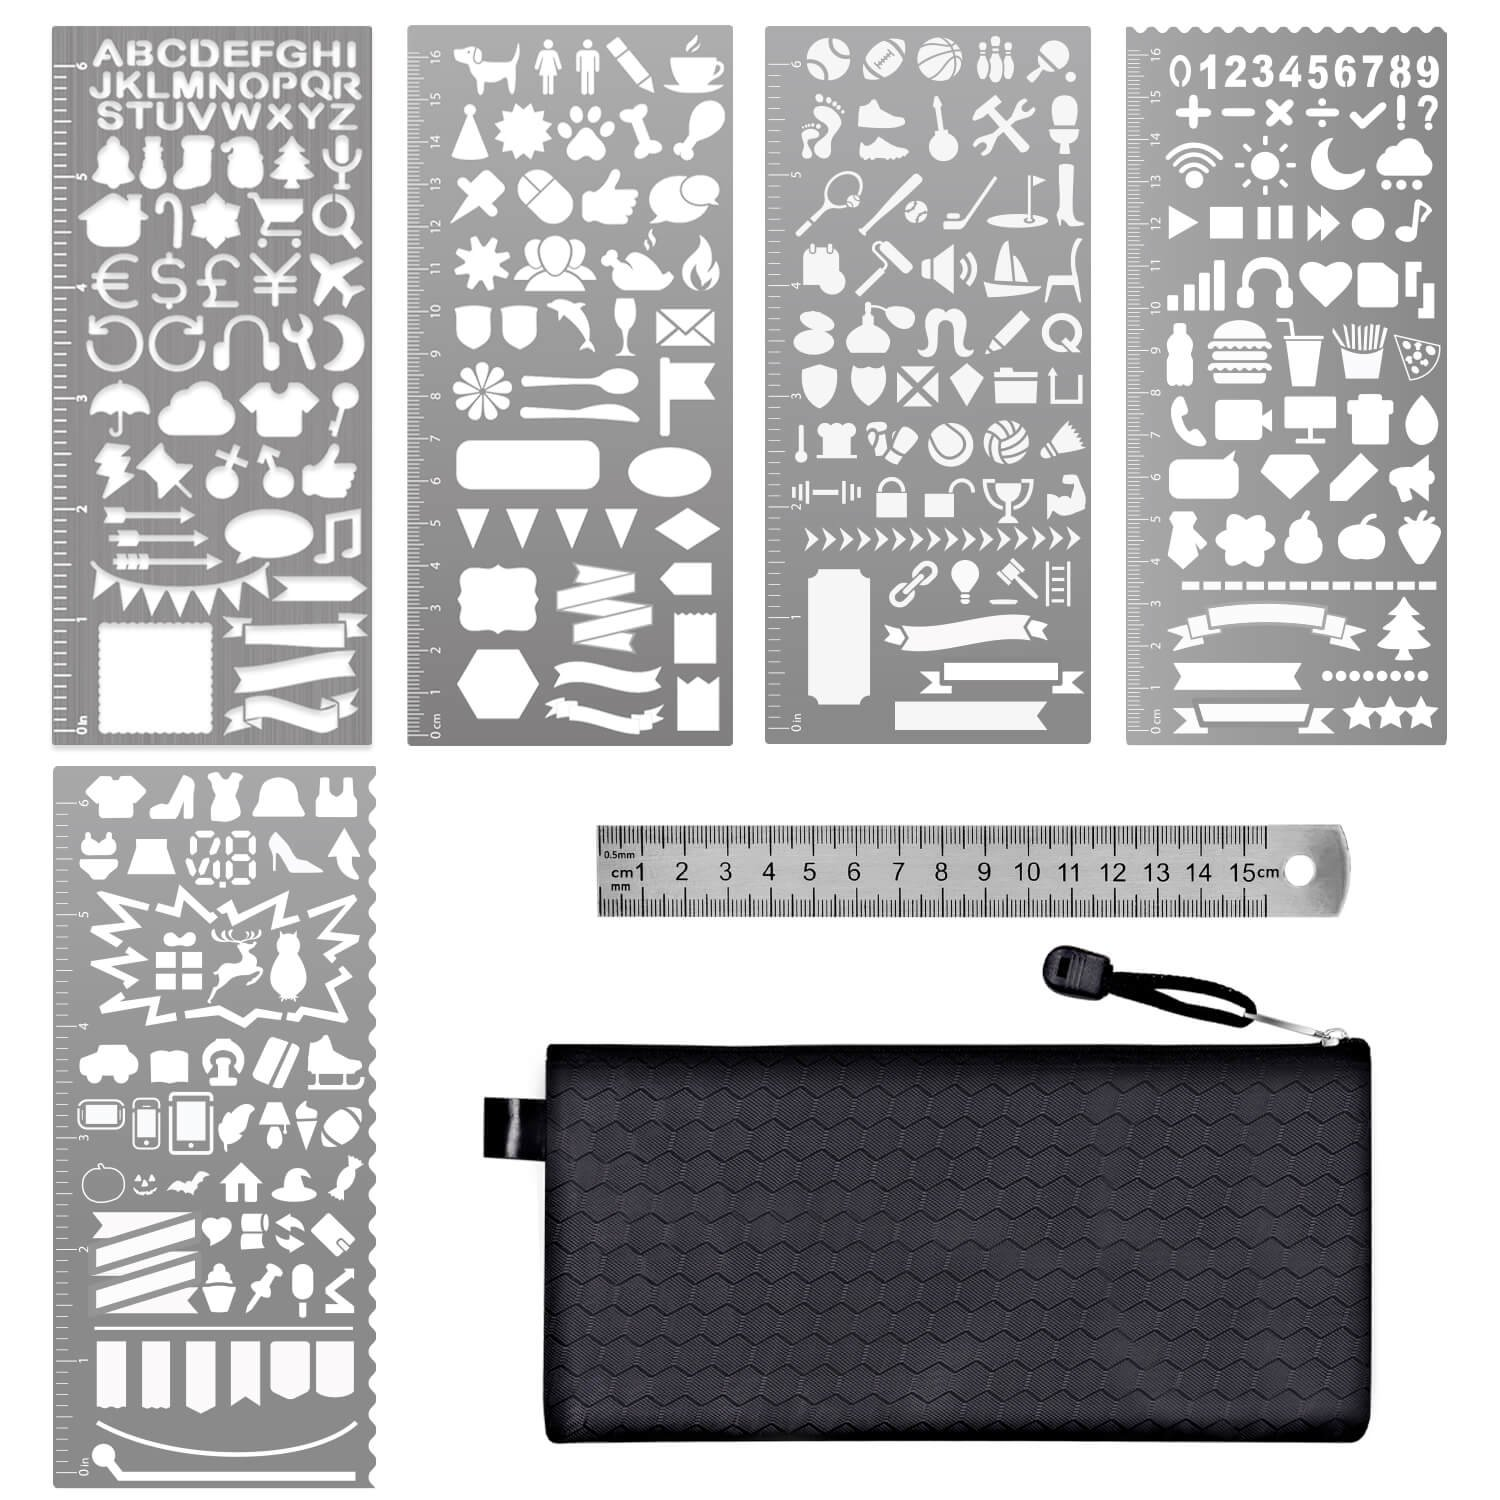 Stencils & Templates | Shop Amazon.com